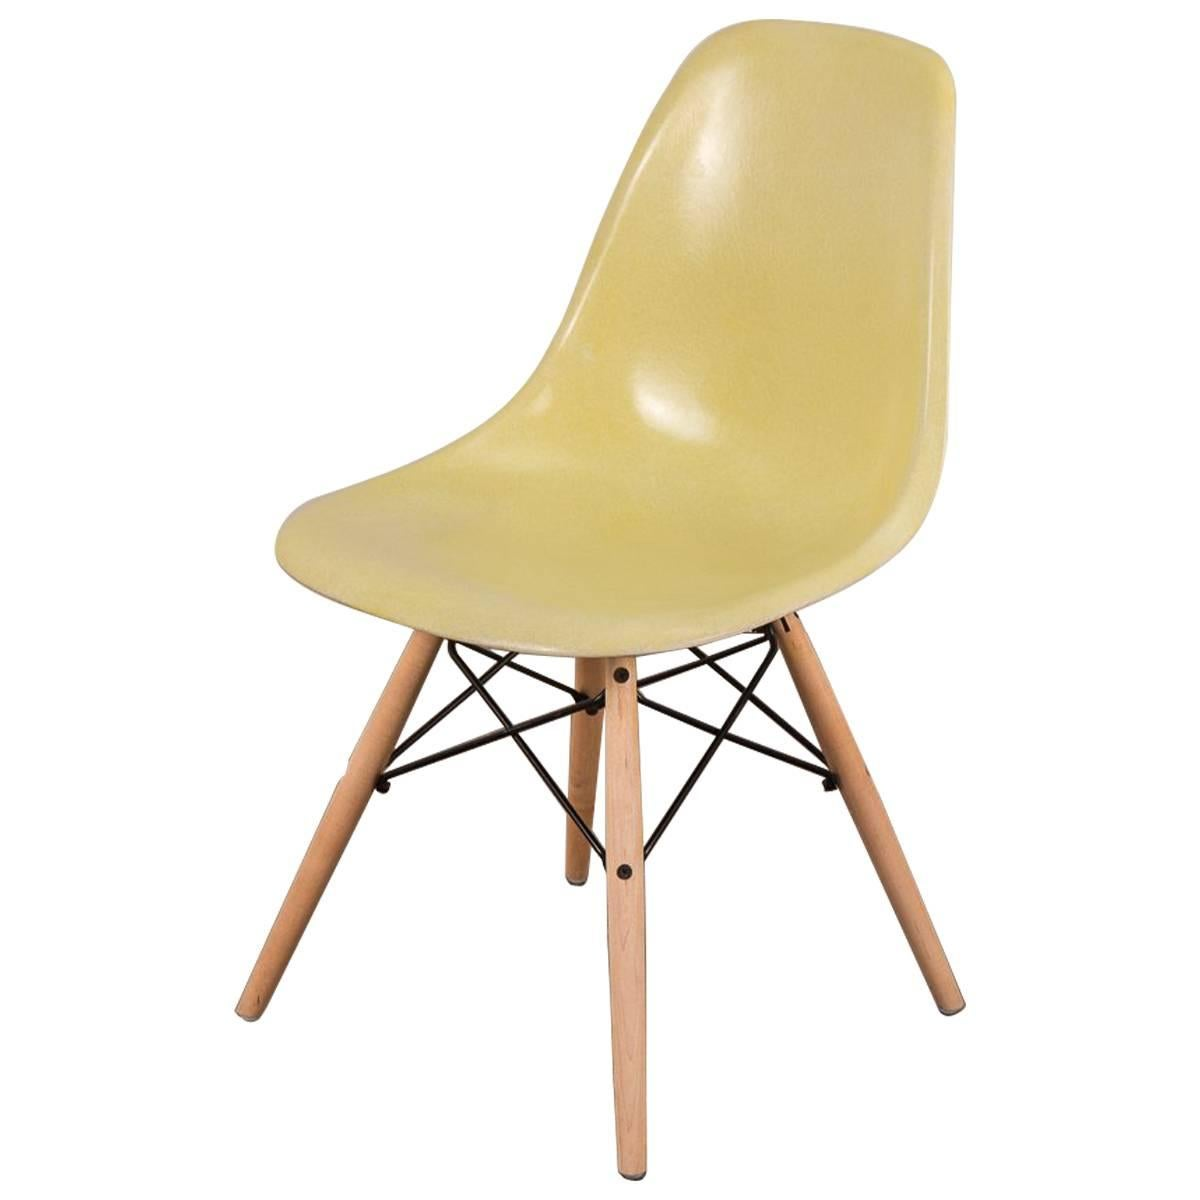 Bon Canary Yellow Eames Shell Chair On Maple Dowel Base For Herman Miller For  Sale